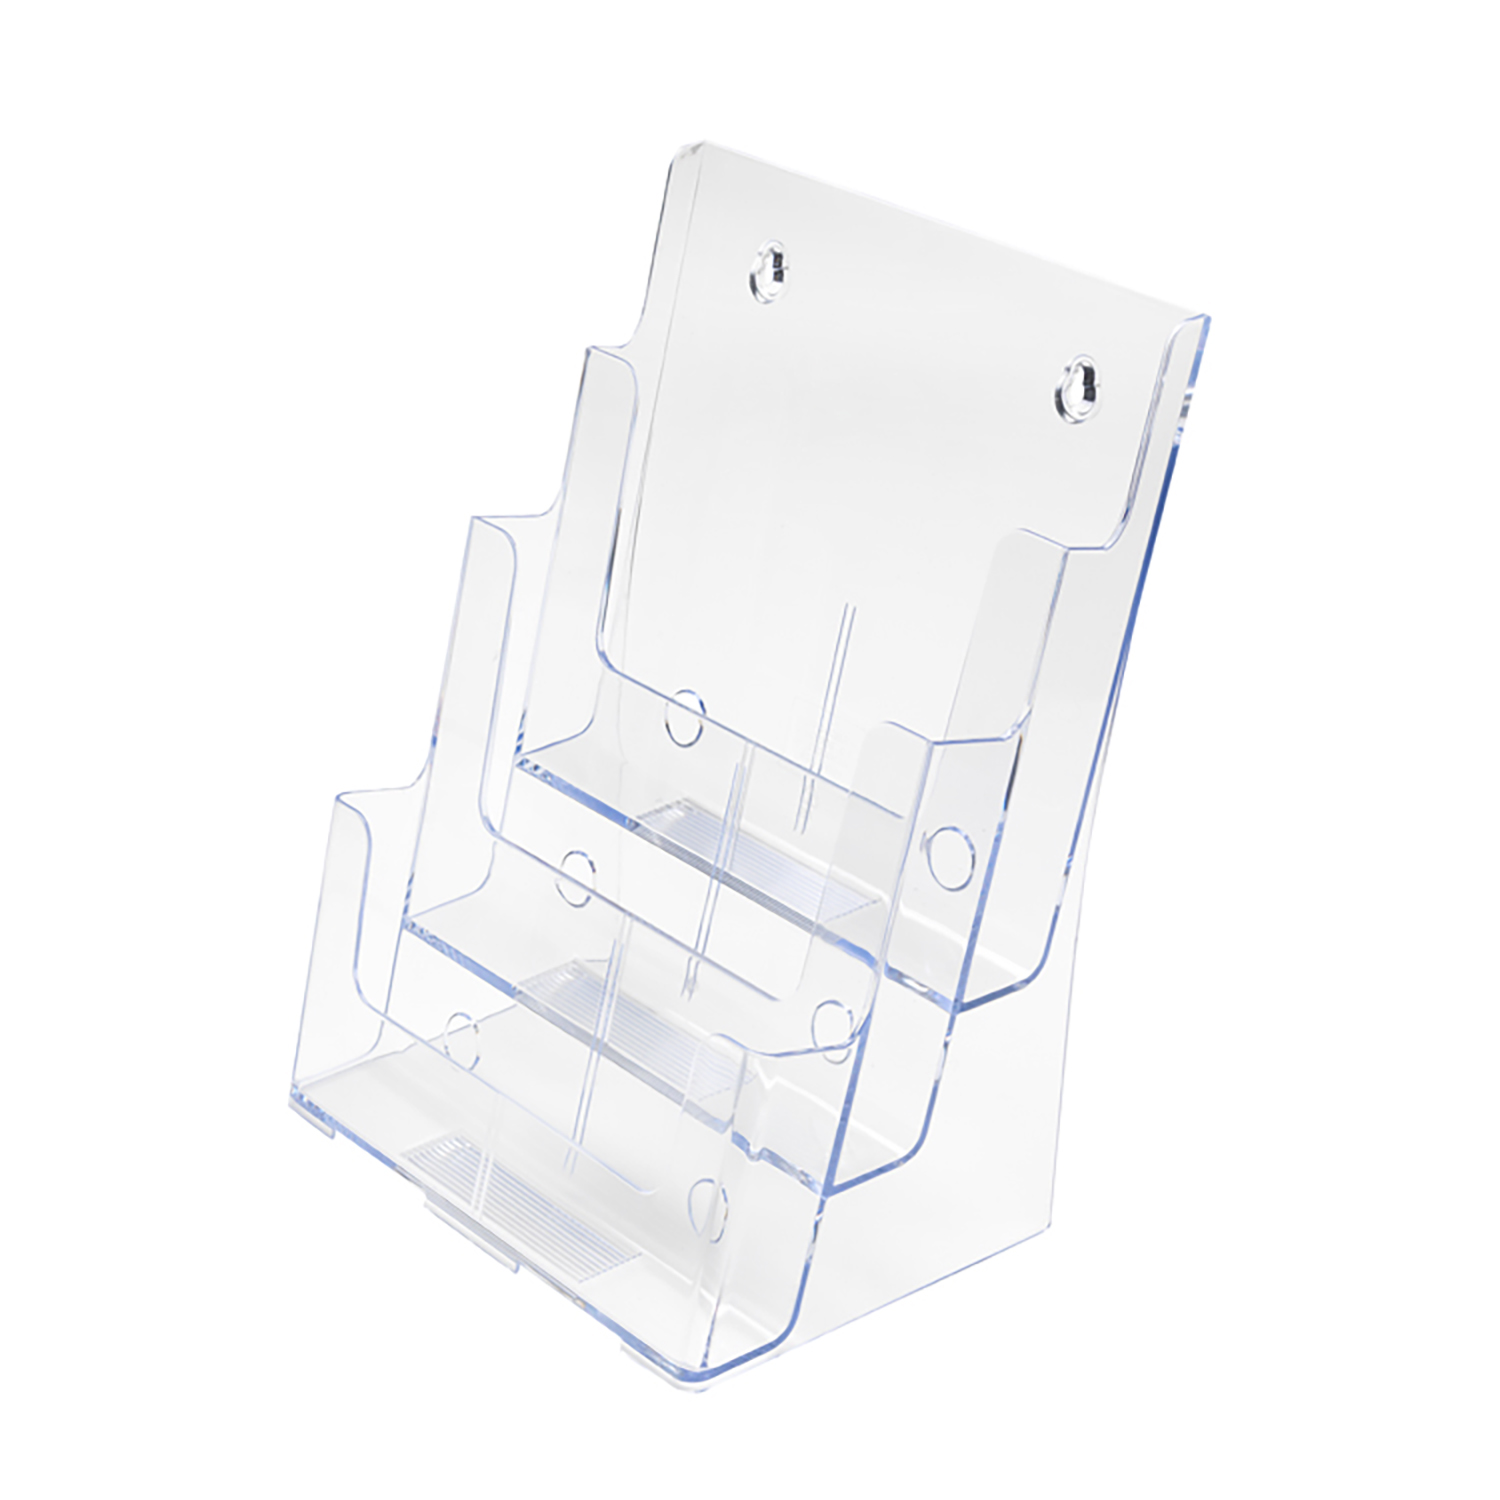 Literature Holders Literature Display Holder Multi Tier for Wall or Desktop 3 x A4 Pockets Clear